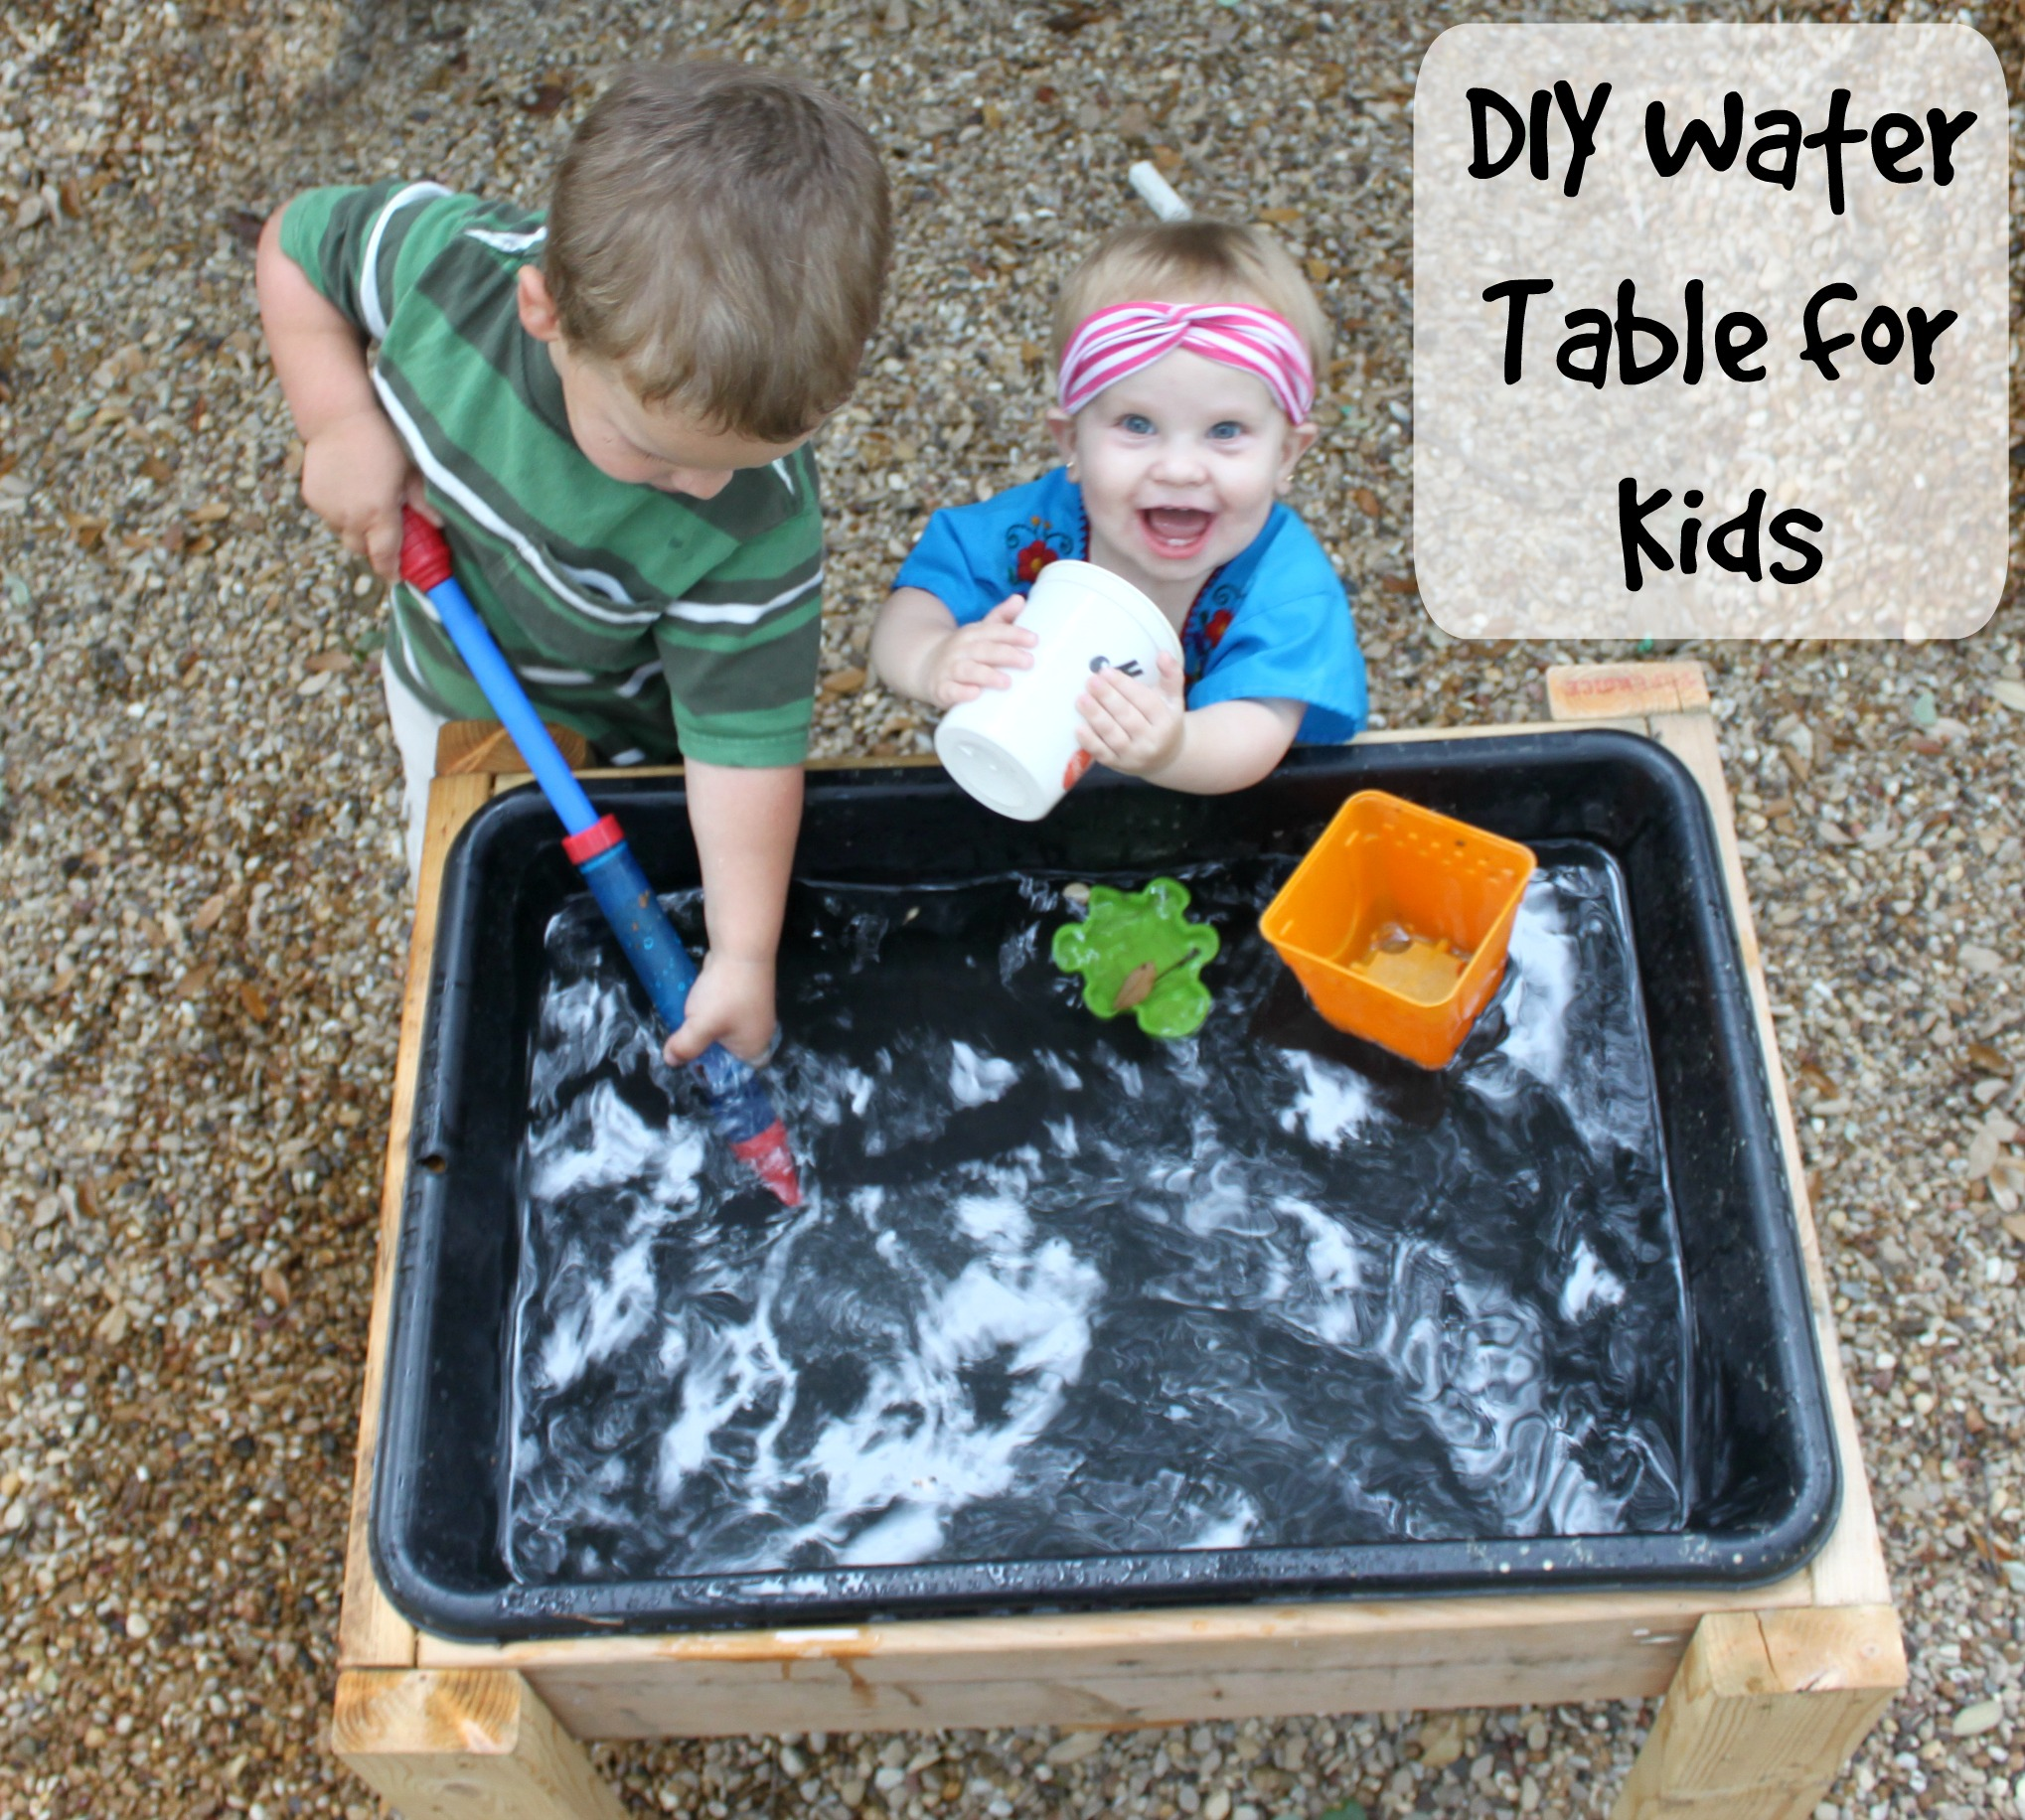 Make a DIY Water Table for Less than Bare Feet on the Dashboard